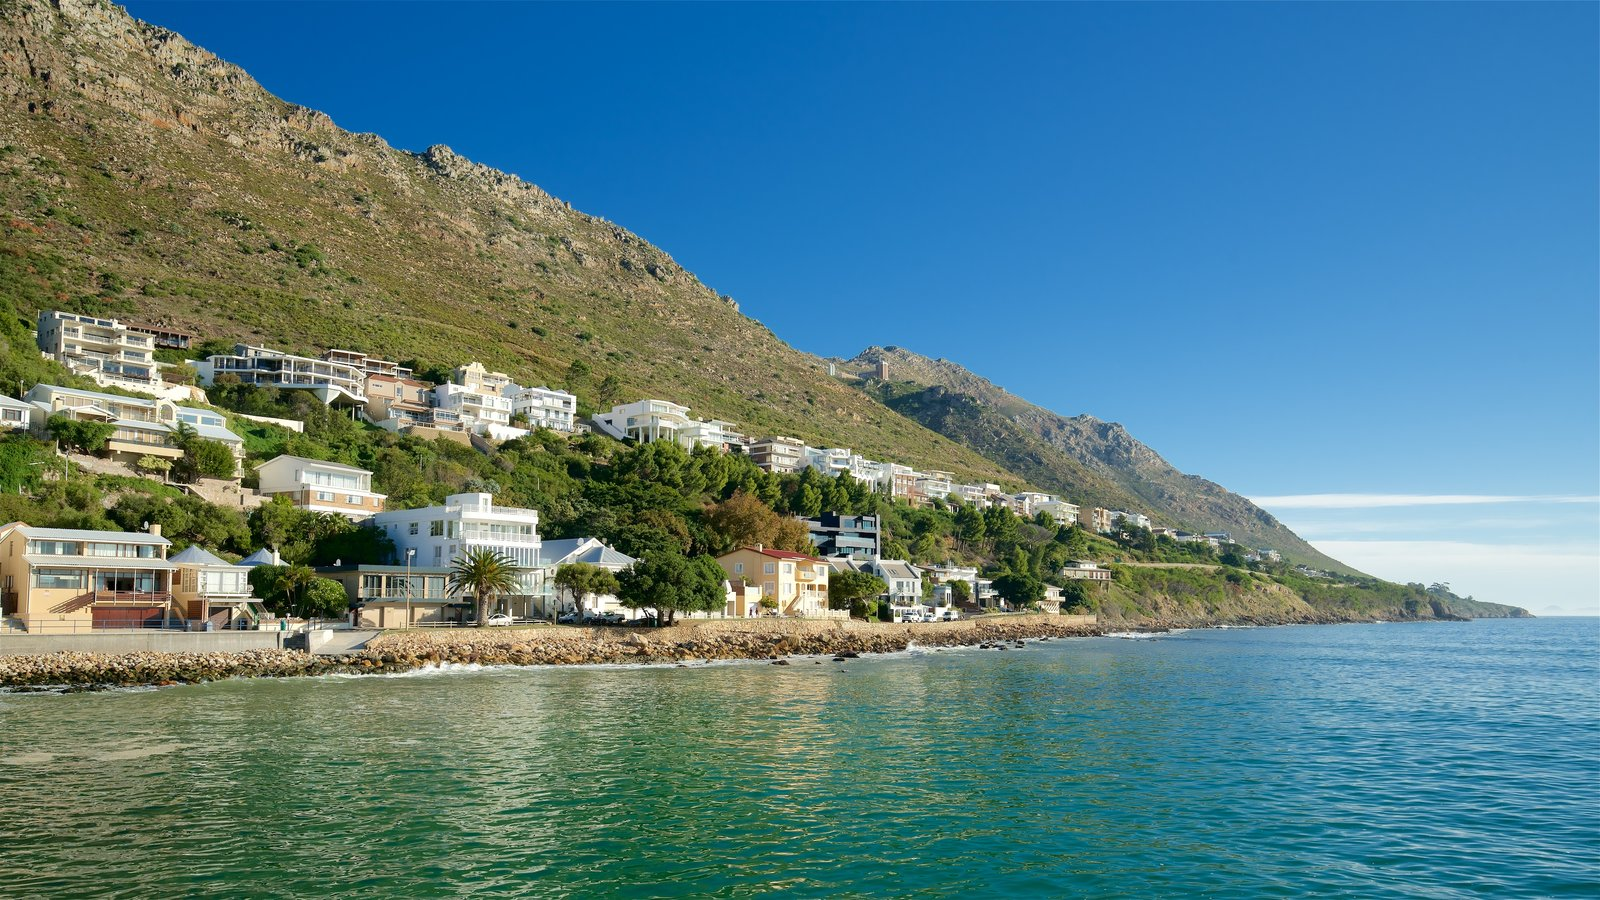 Places to visit in Gordon's Bay